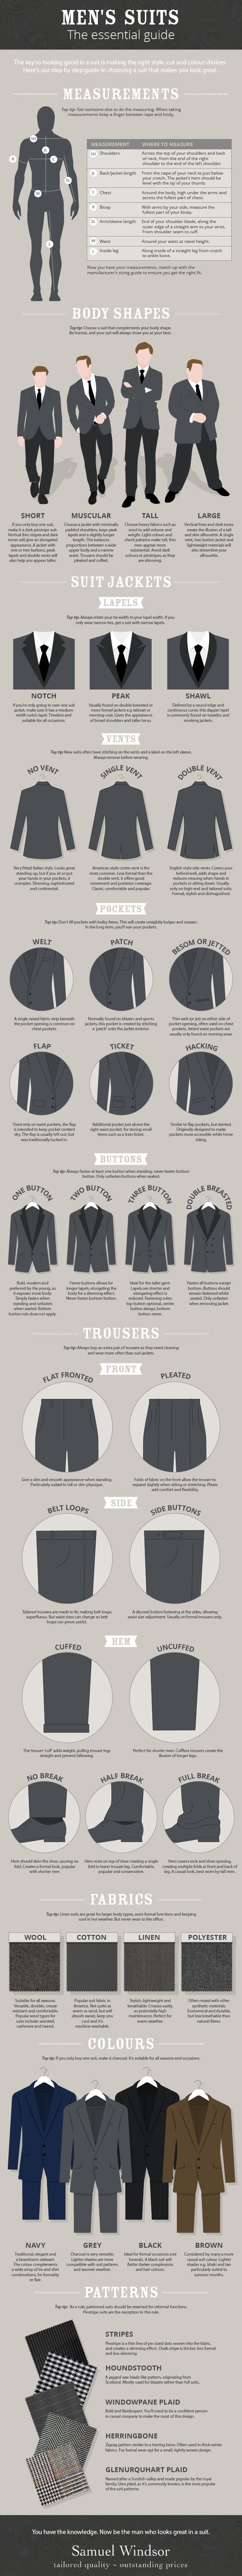 The essential guide to men's suits - infographic: